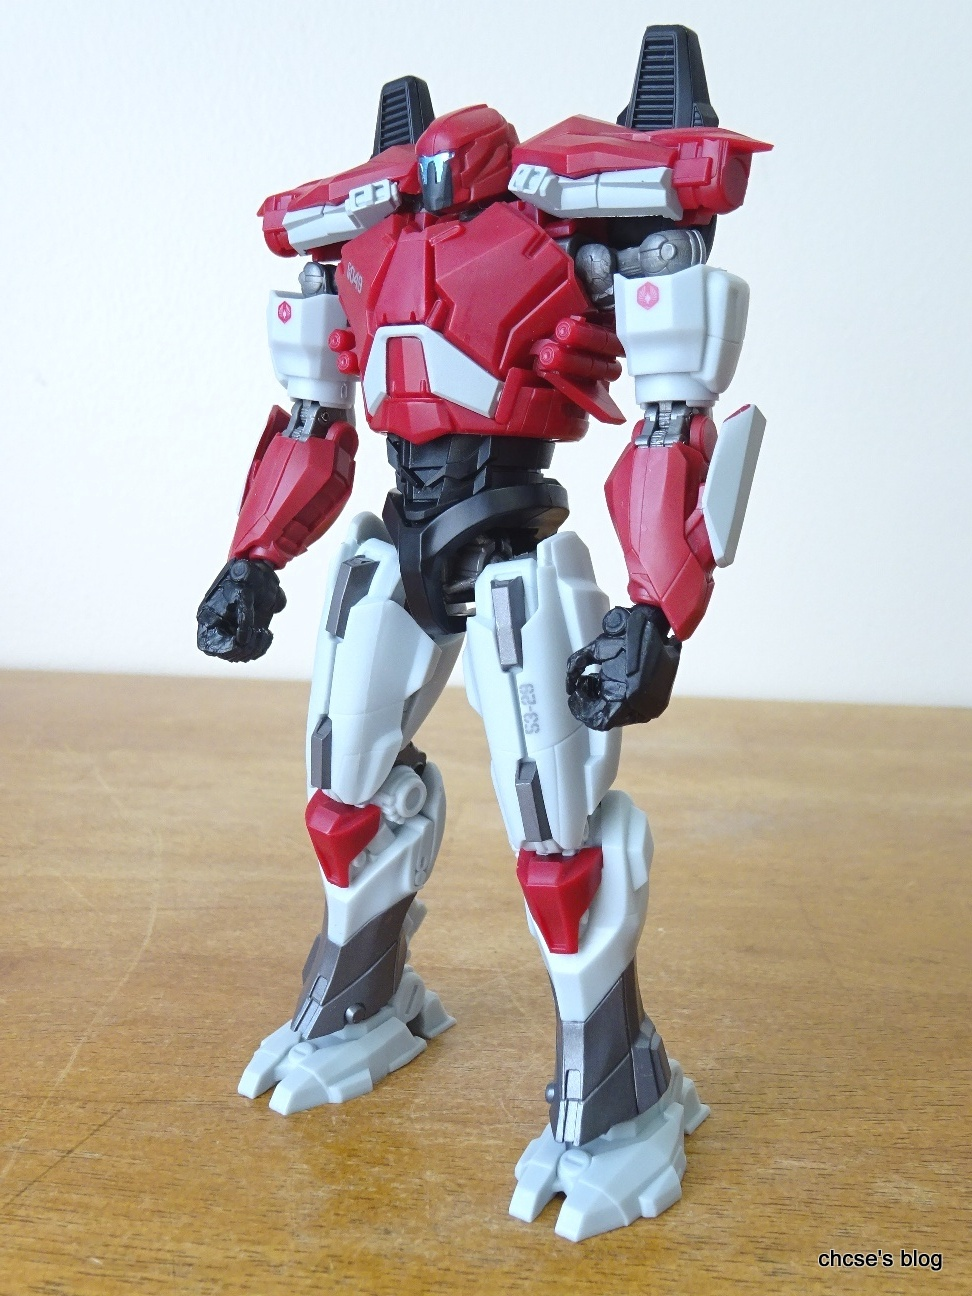 ChCse's blog: Toy Review: Robot Damashii Guardian Bravo